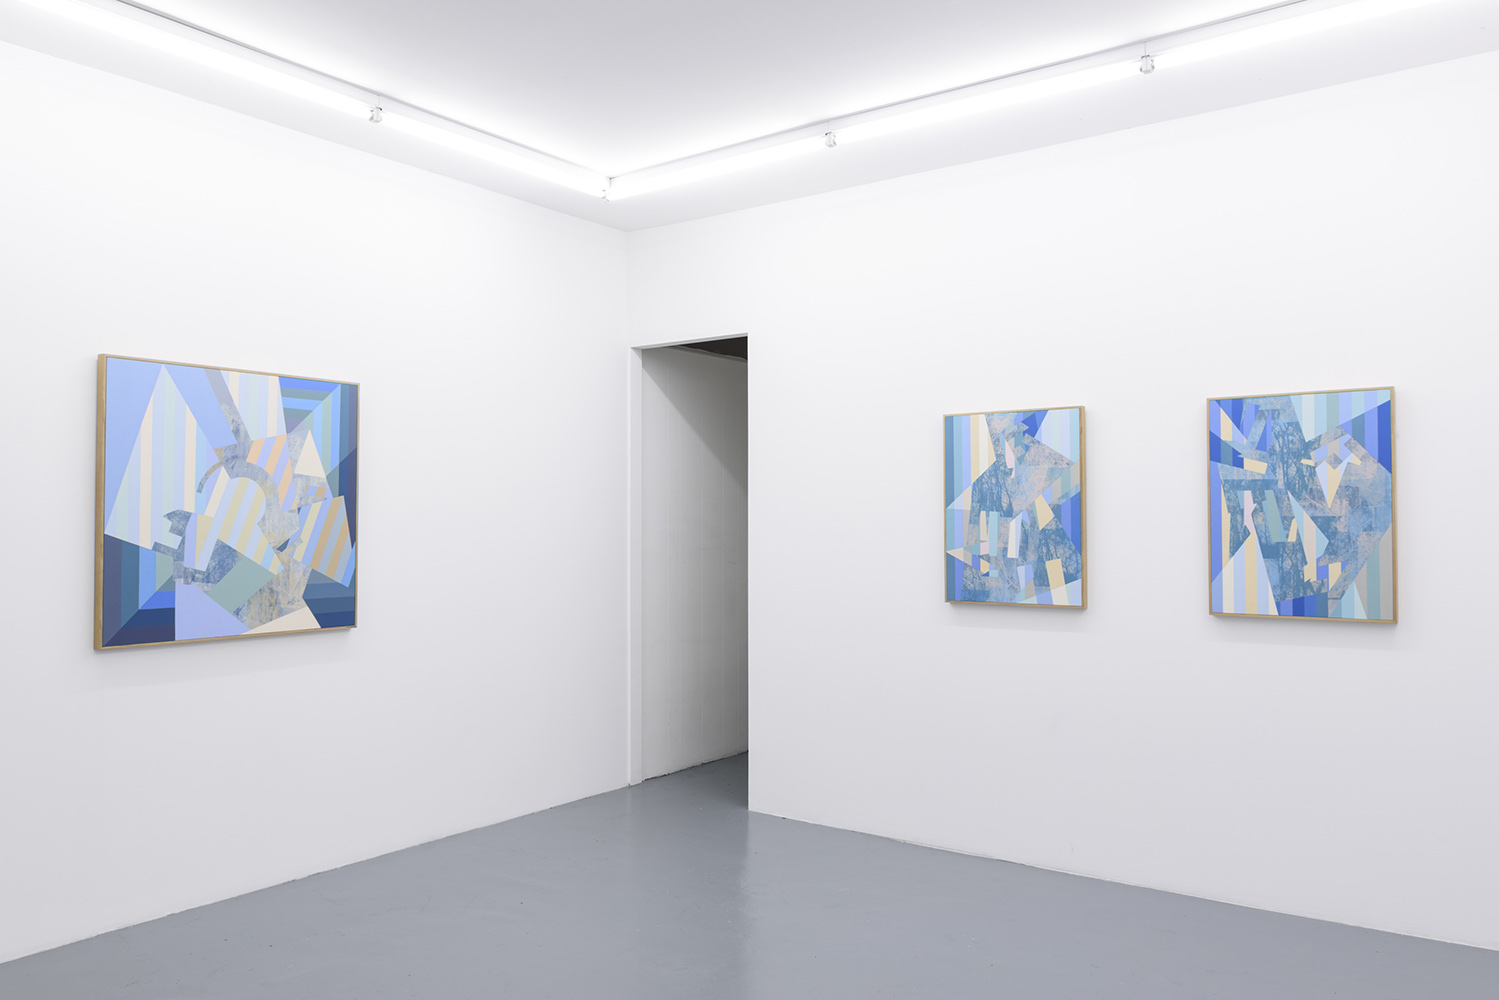 Installation: A part and between, Five Walls<br>Orbit, Winter Sun and Aurora<br>Image credit: Christopher Sanders